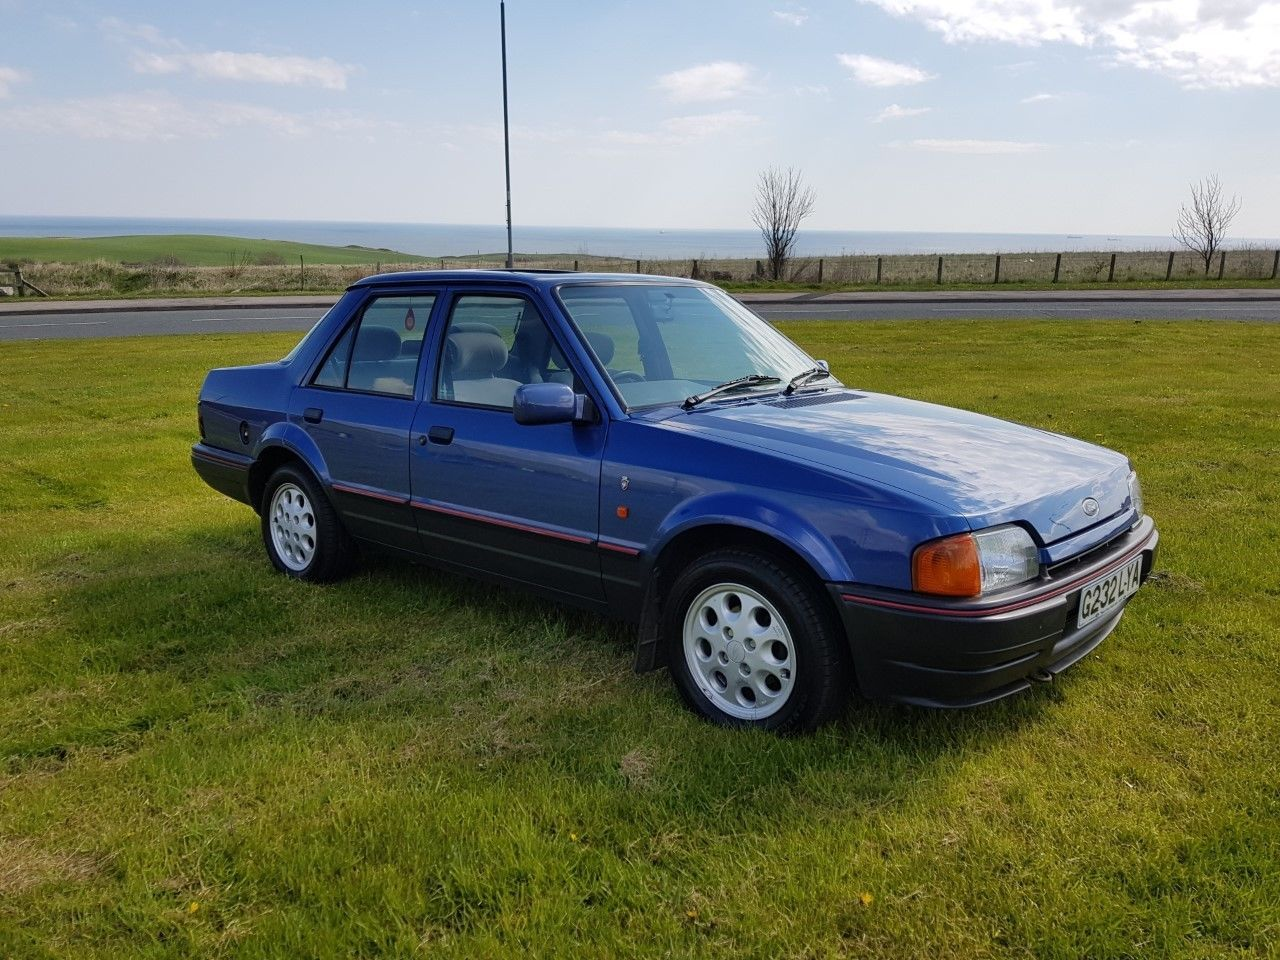 1990 G Ford Orion 1 6 Injection Ghia Ford Orion Orion Ford